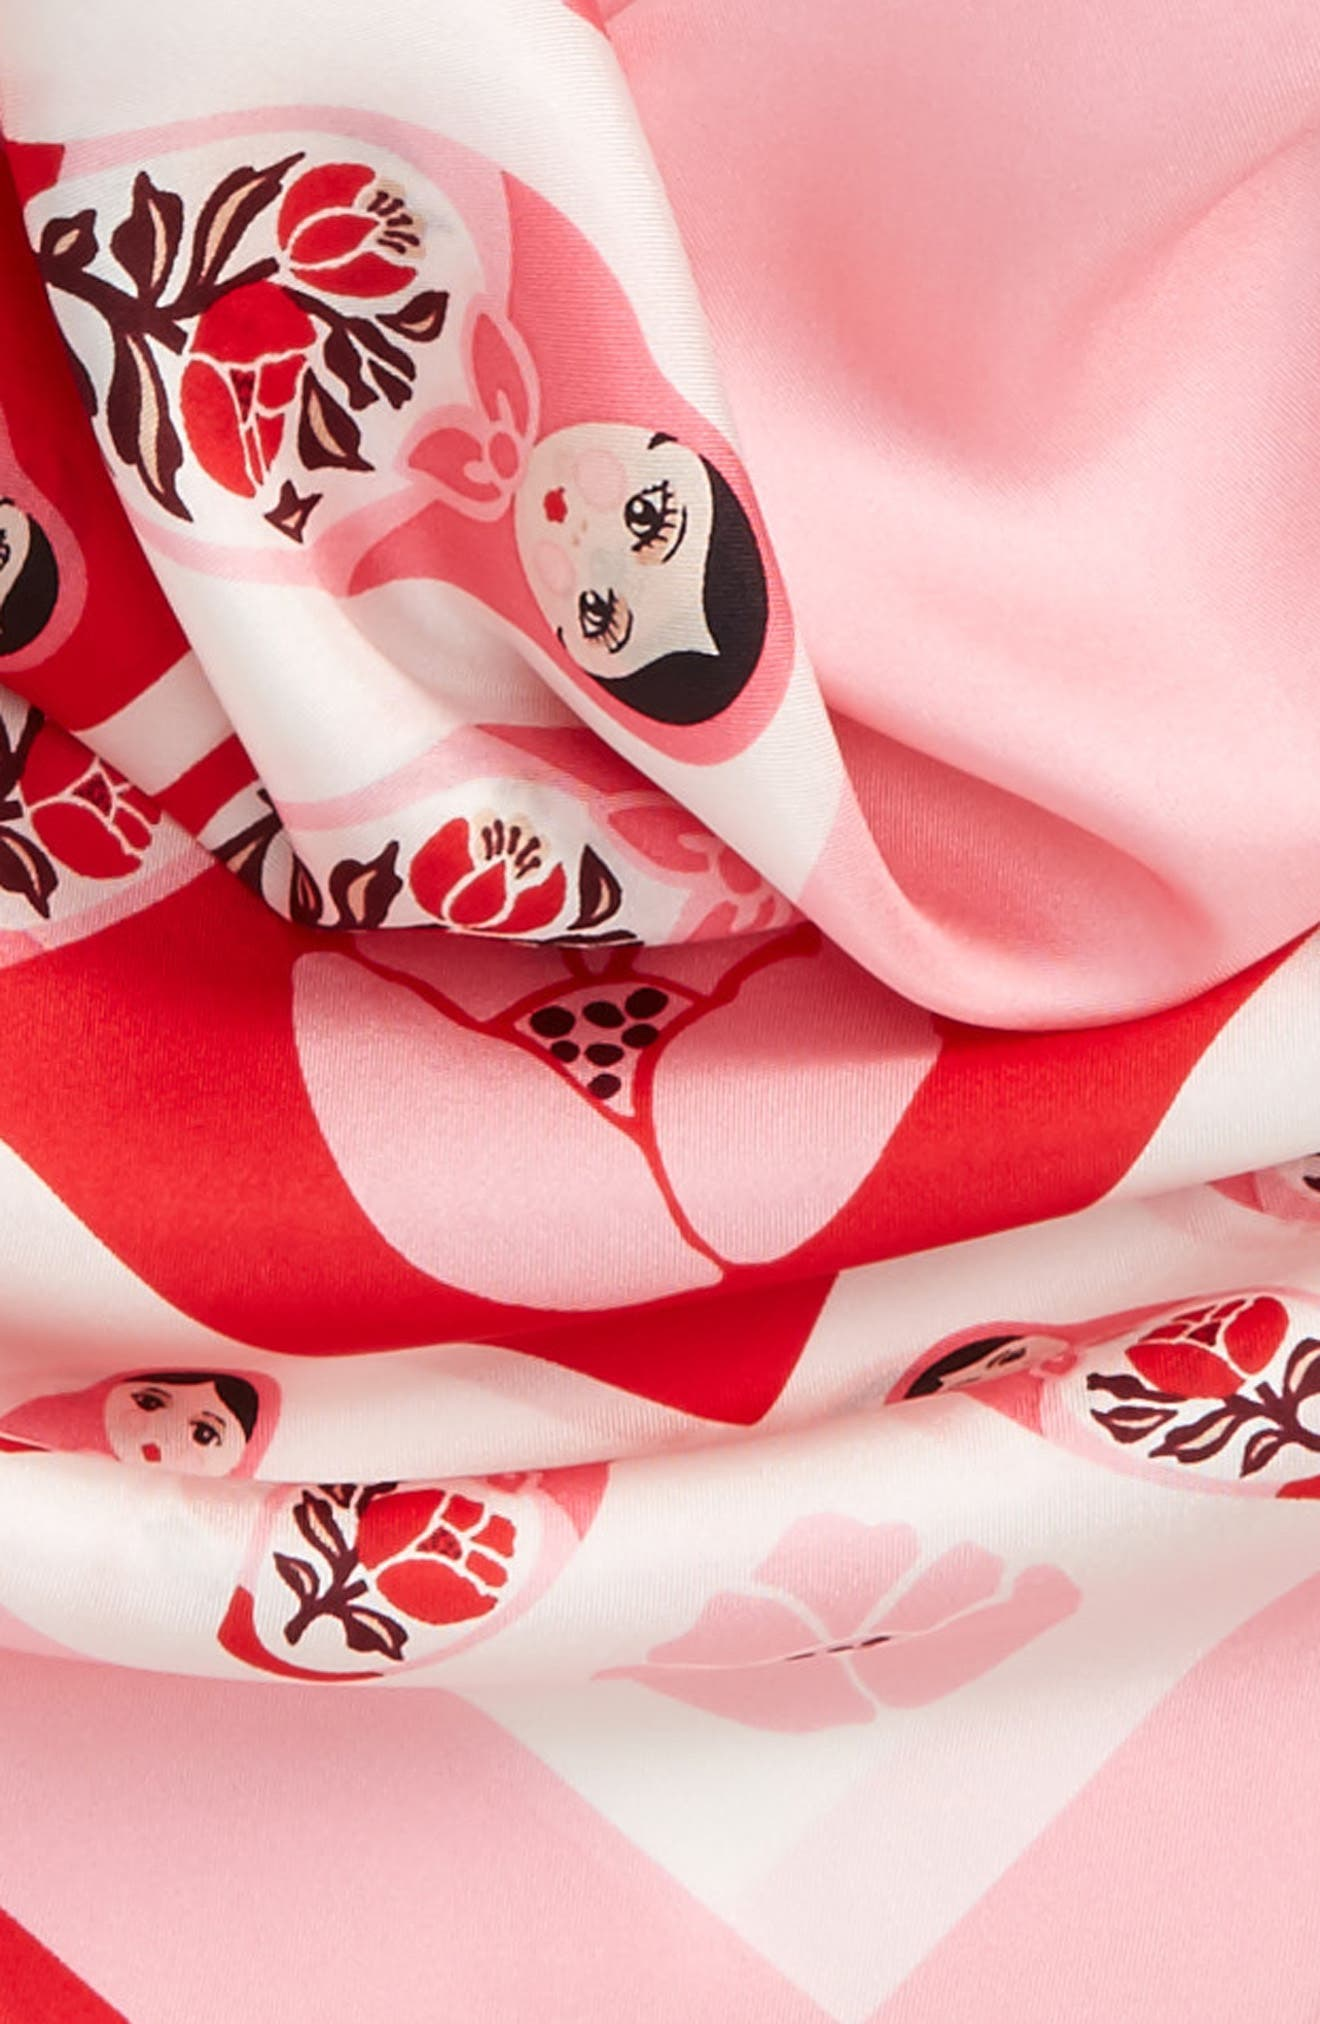 nesting dolls silk scarf,                             Alternate thumbnail 3, color,                             Charm Red